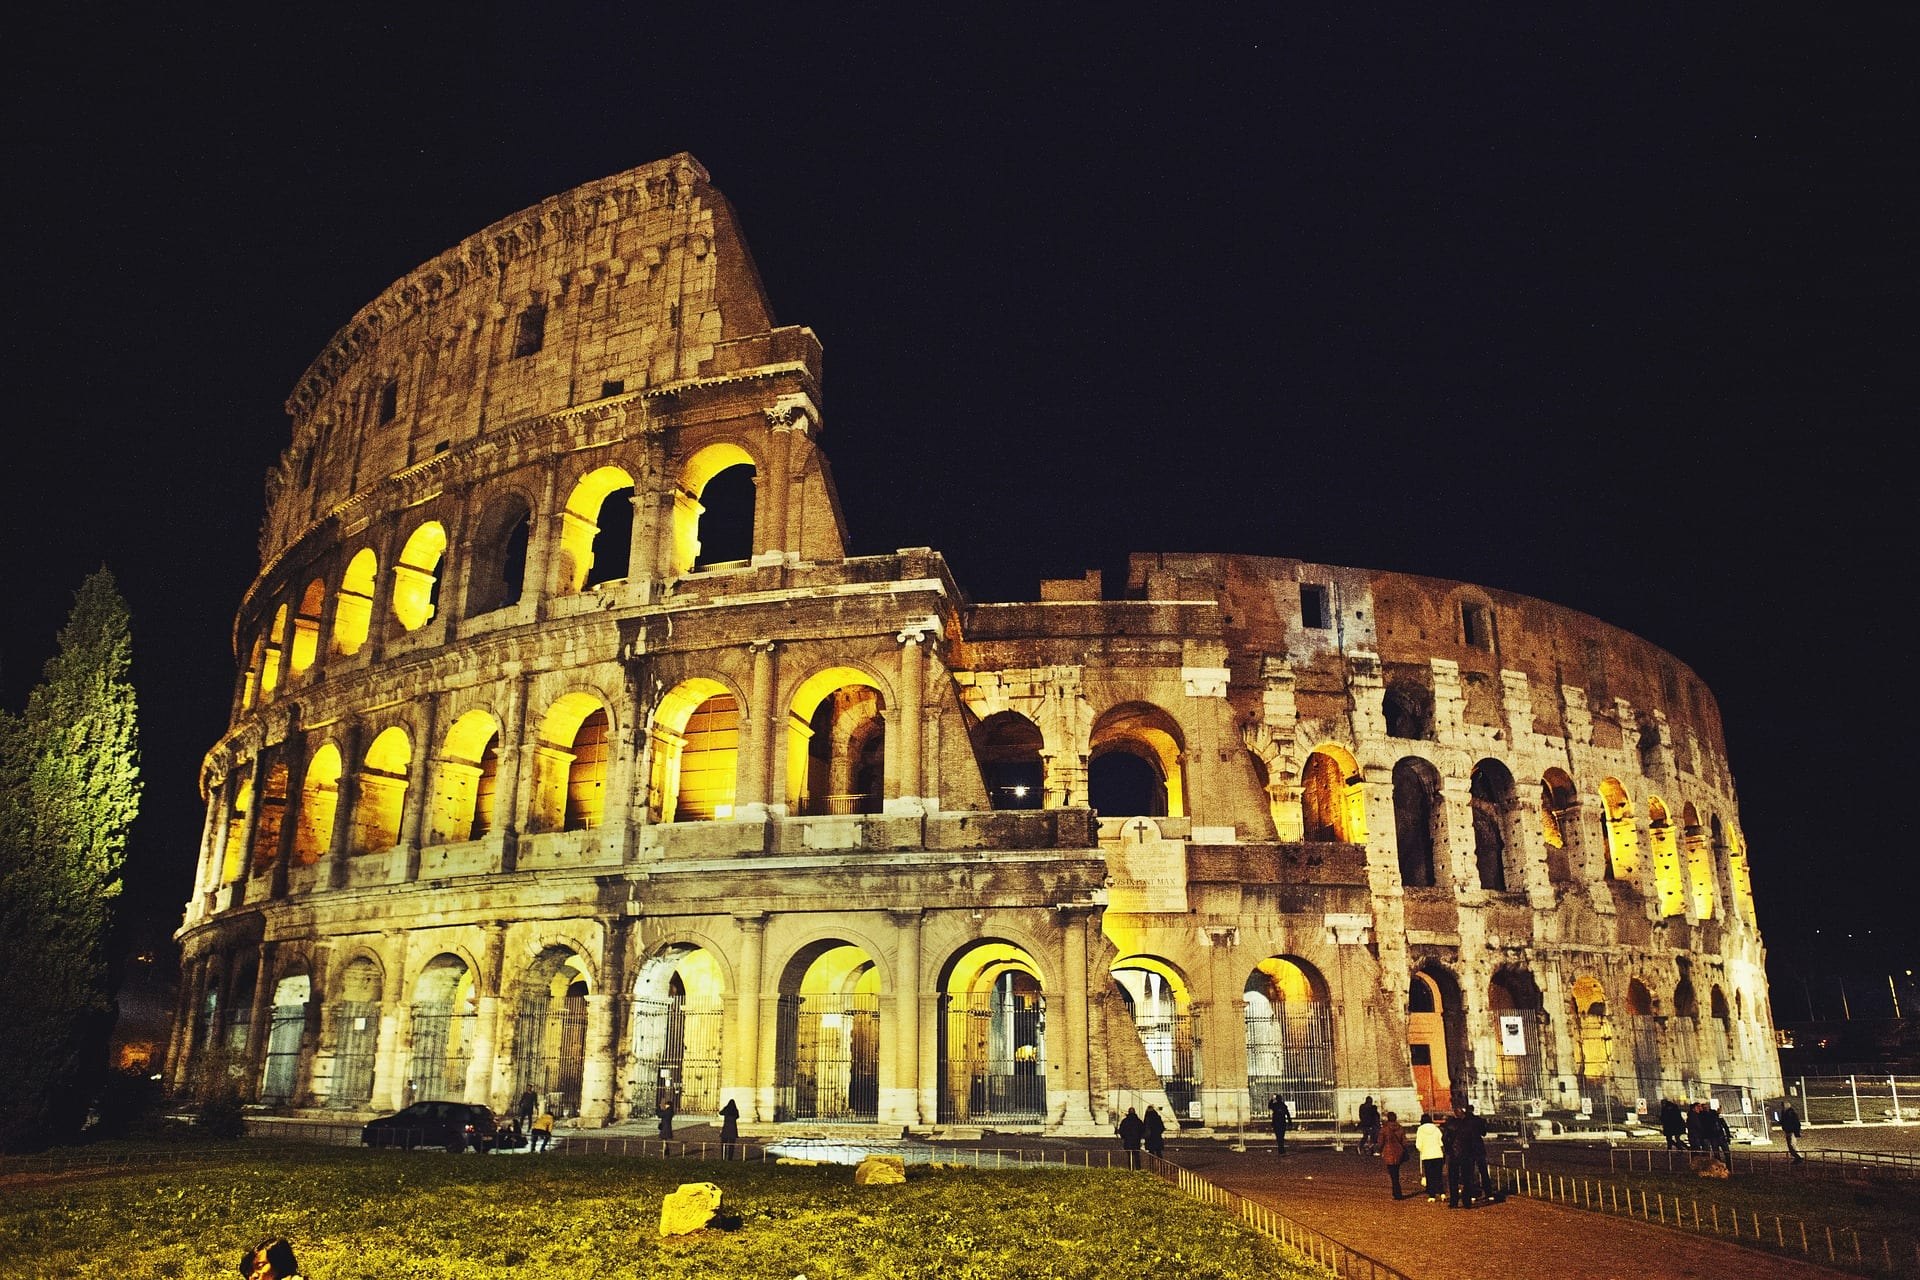 Visit the Coloseum at night during your 1 day in Rome